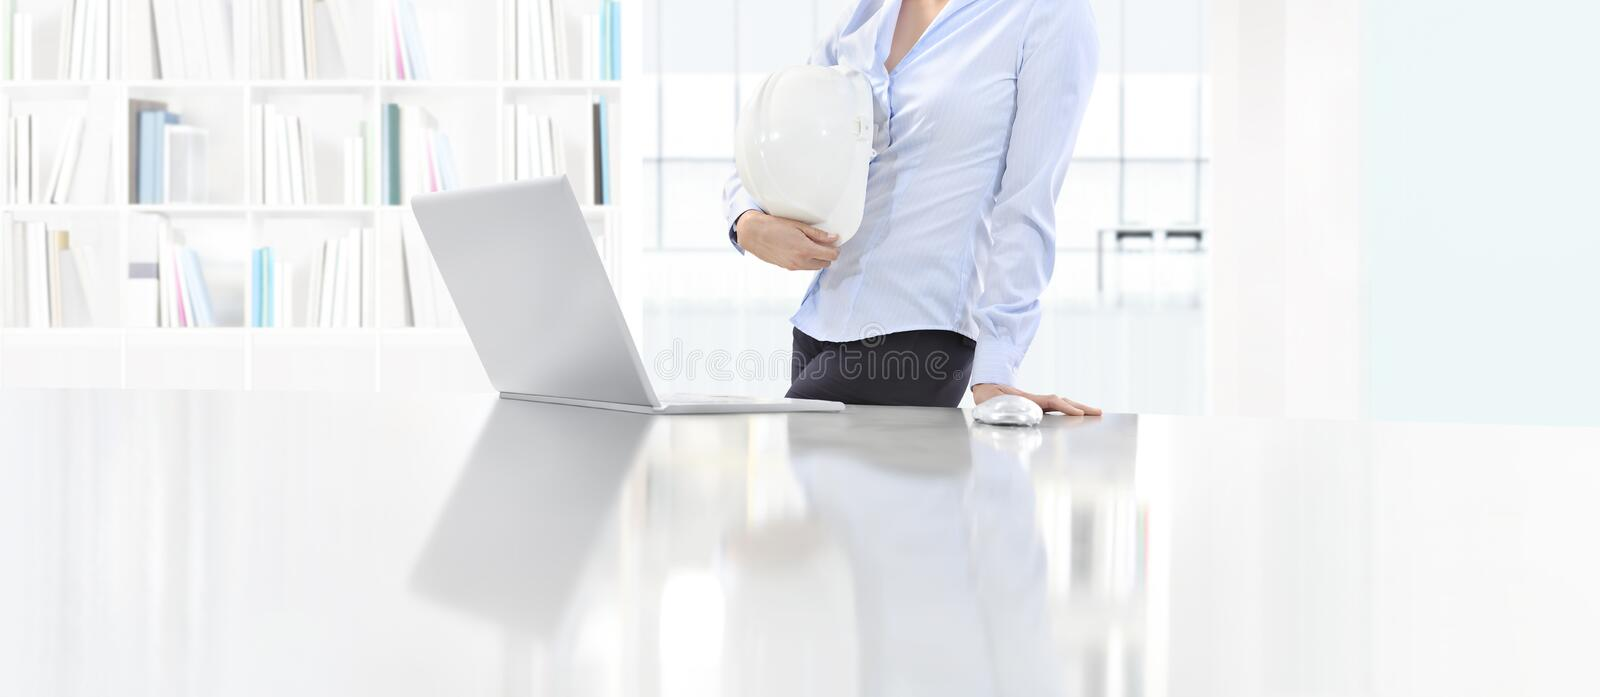 Woman holding an helmet work at desk with computer in office, pr royalty free stock photography